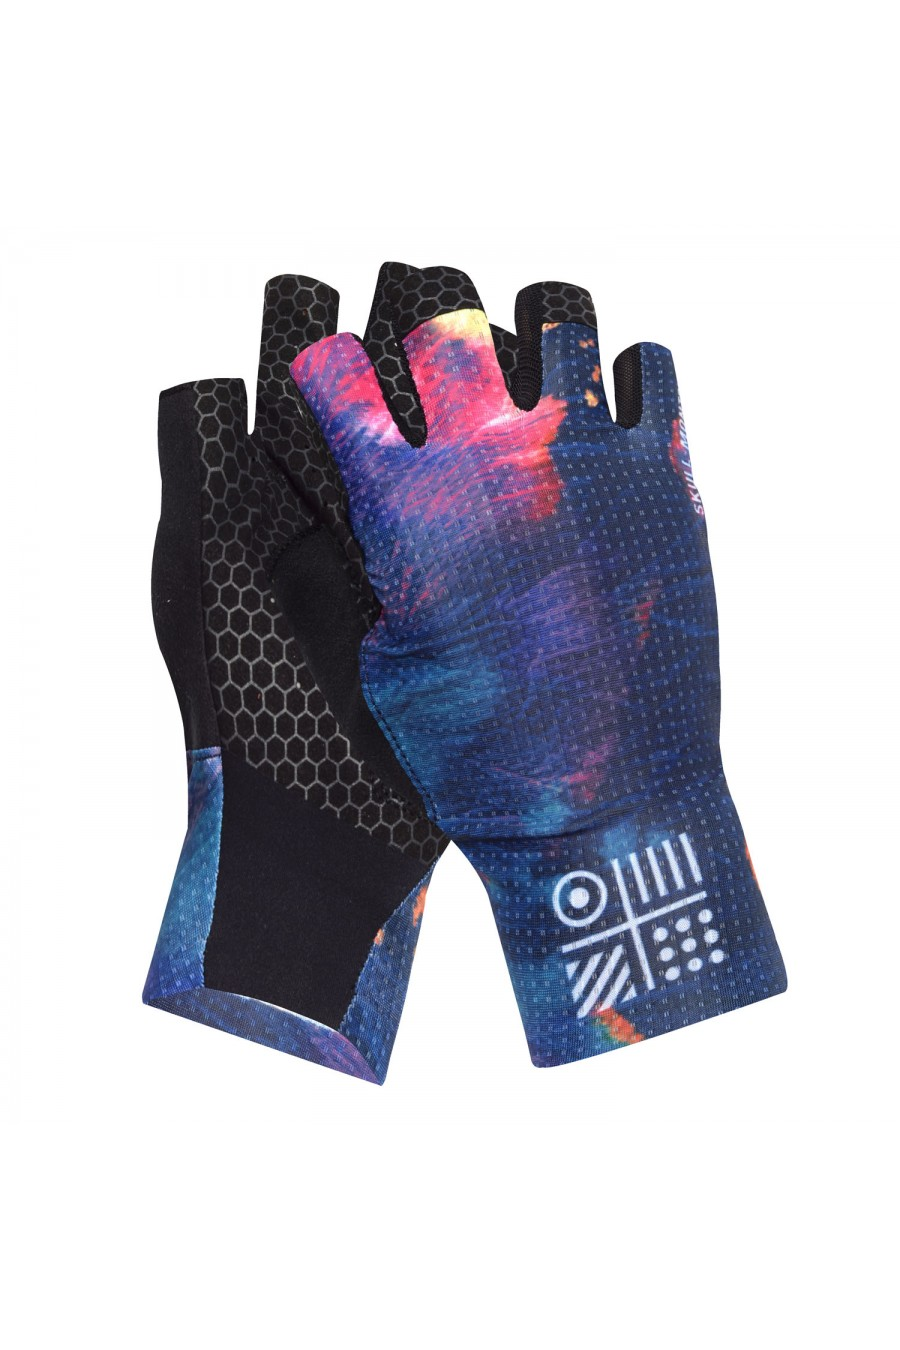 personalised cycling gloves